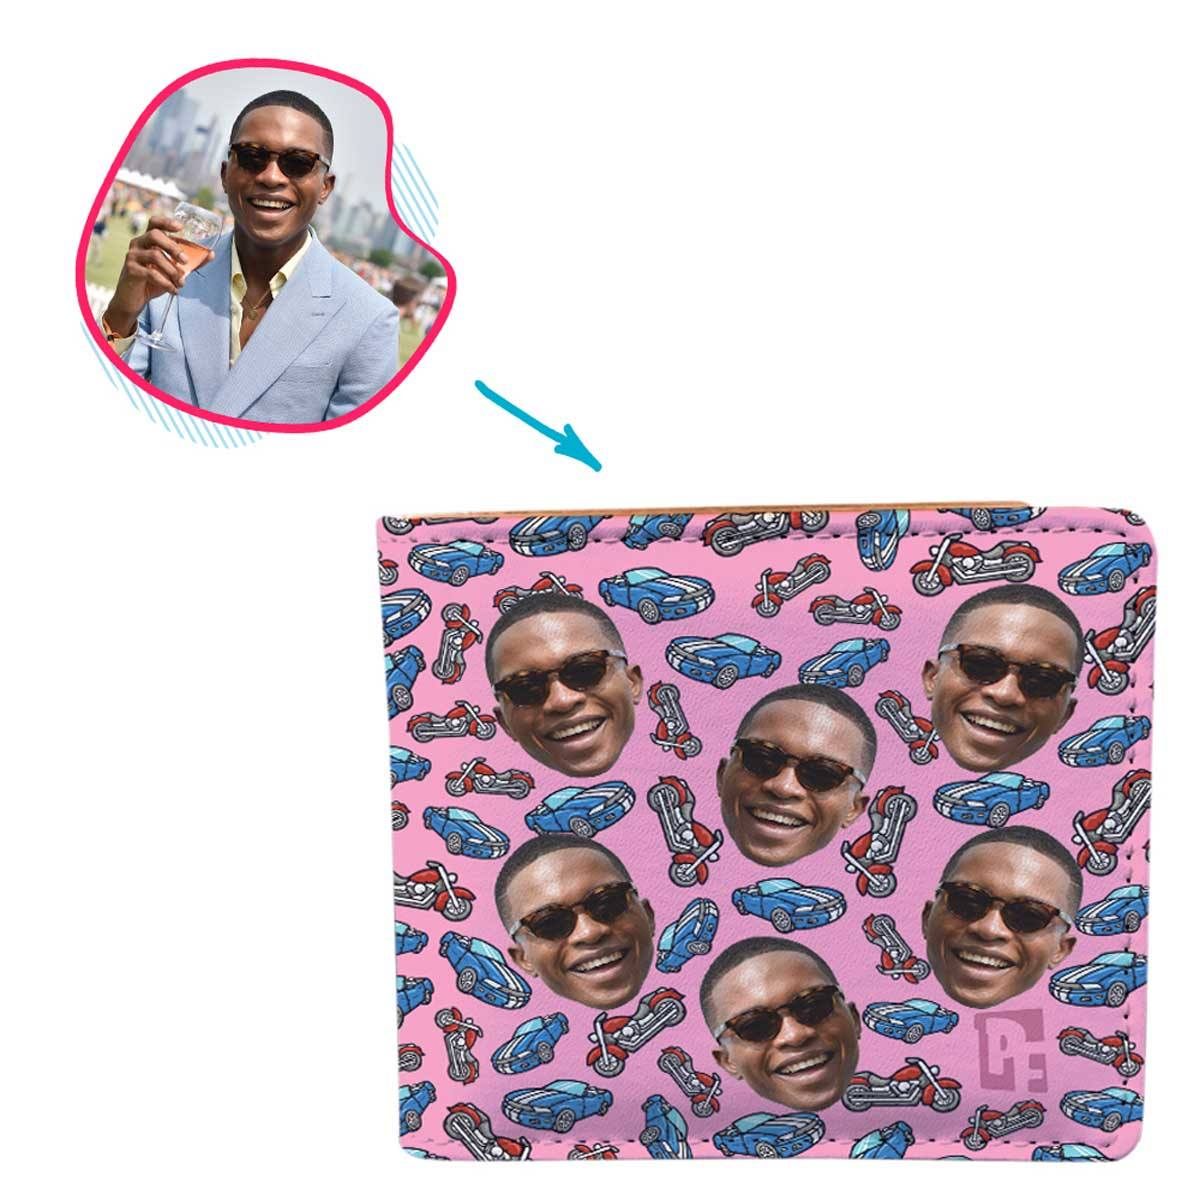 Pink Cars & Motorbikes personalized wallet with photo of face printed on it